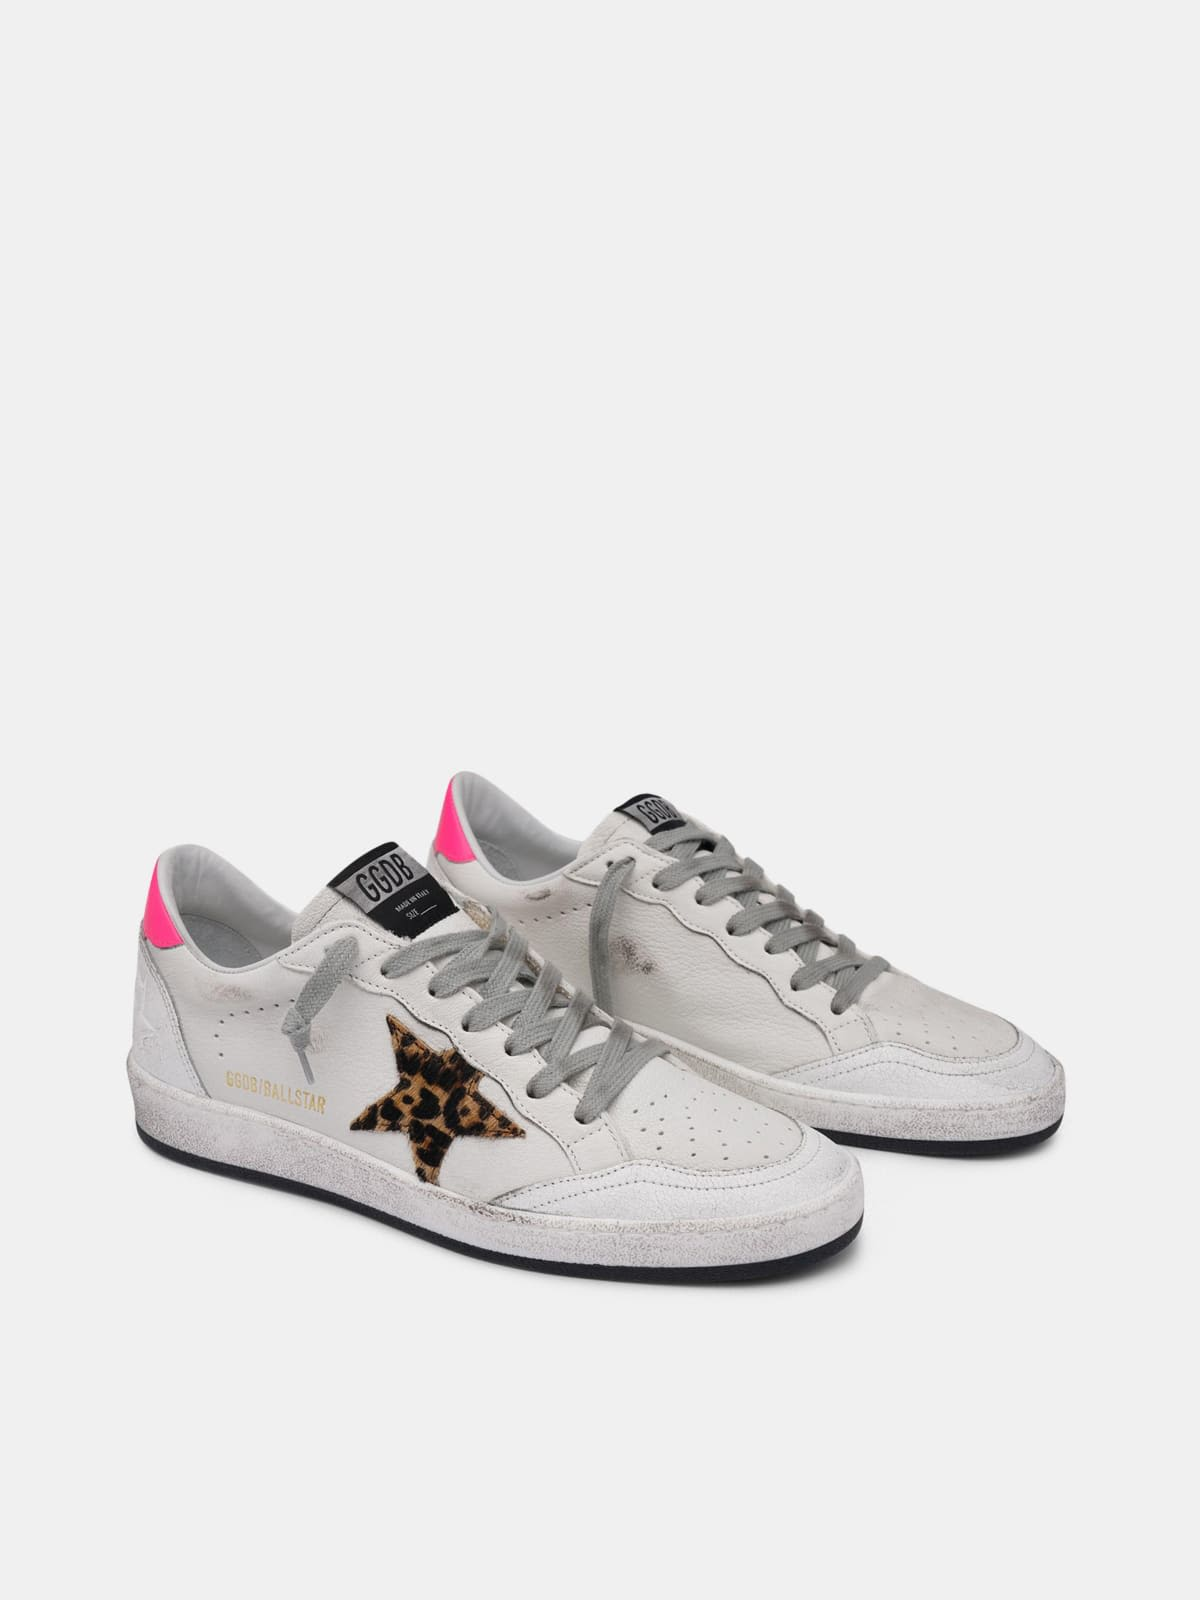 White Ball Star sneakers in leather with leopard-print star